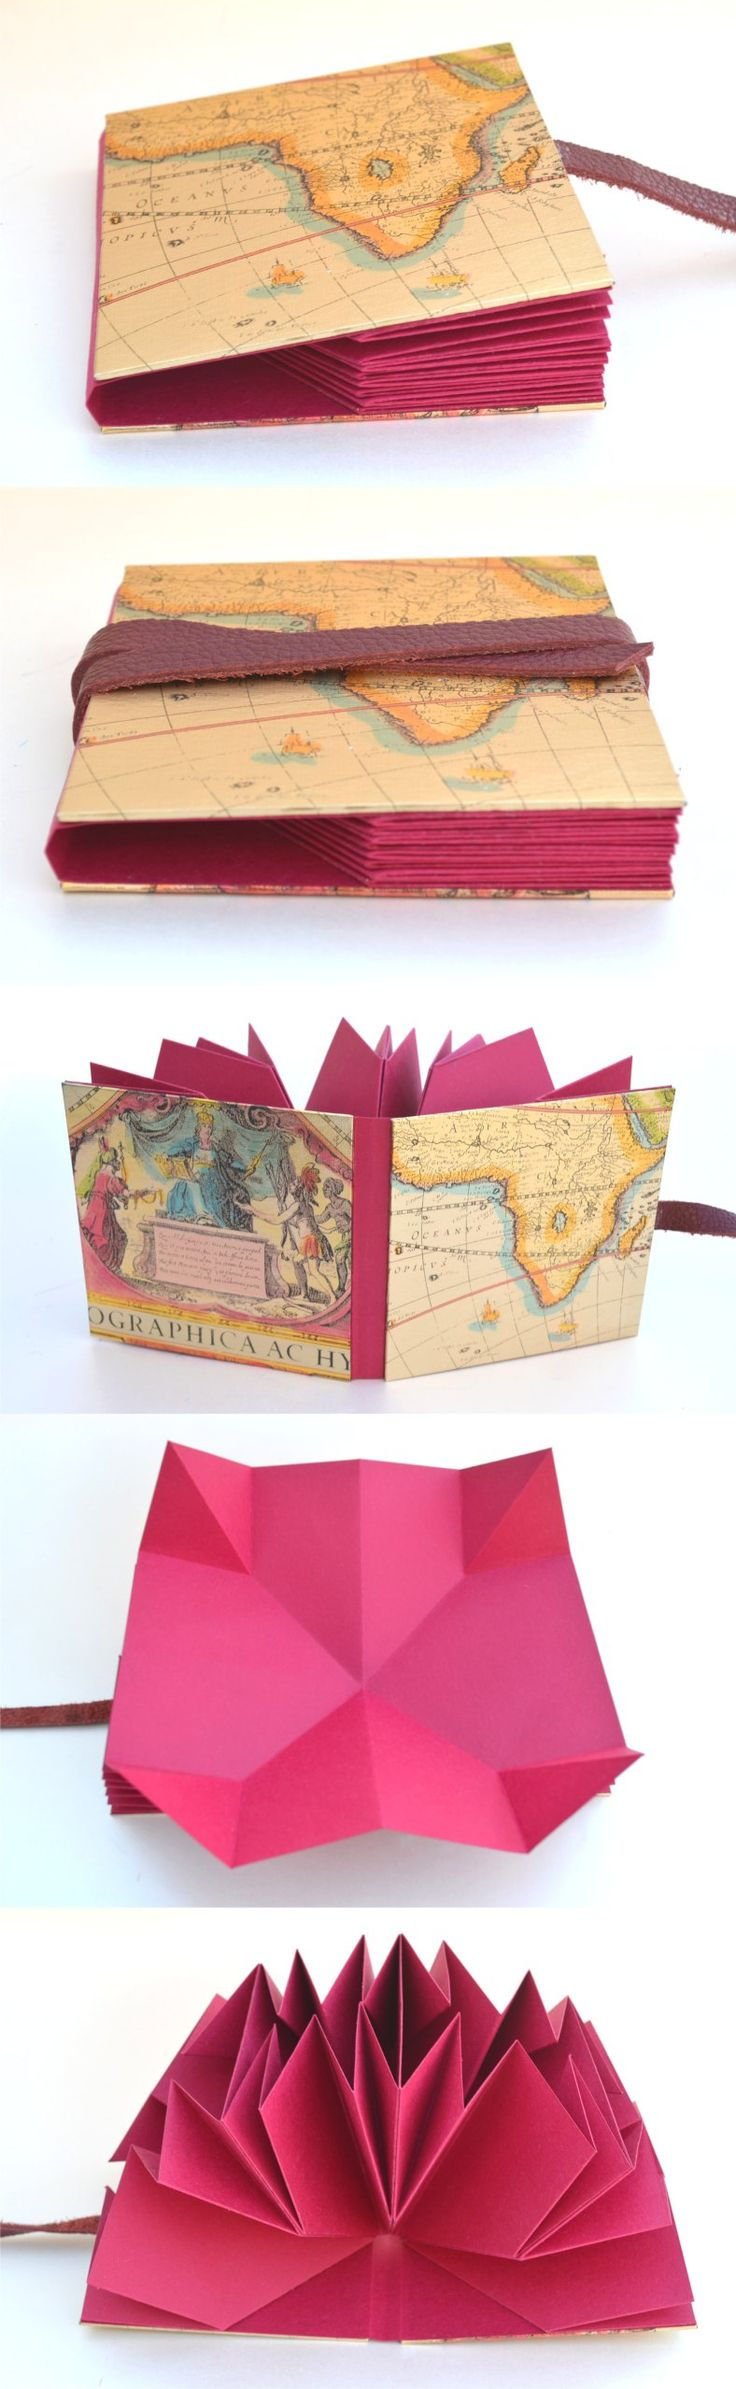 artist book made with origami folded paper - concertina book